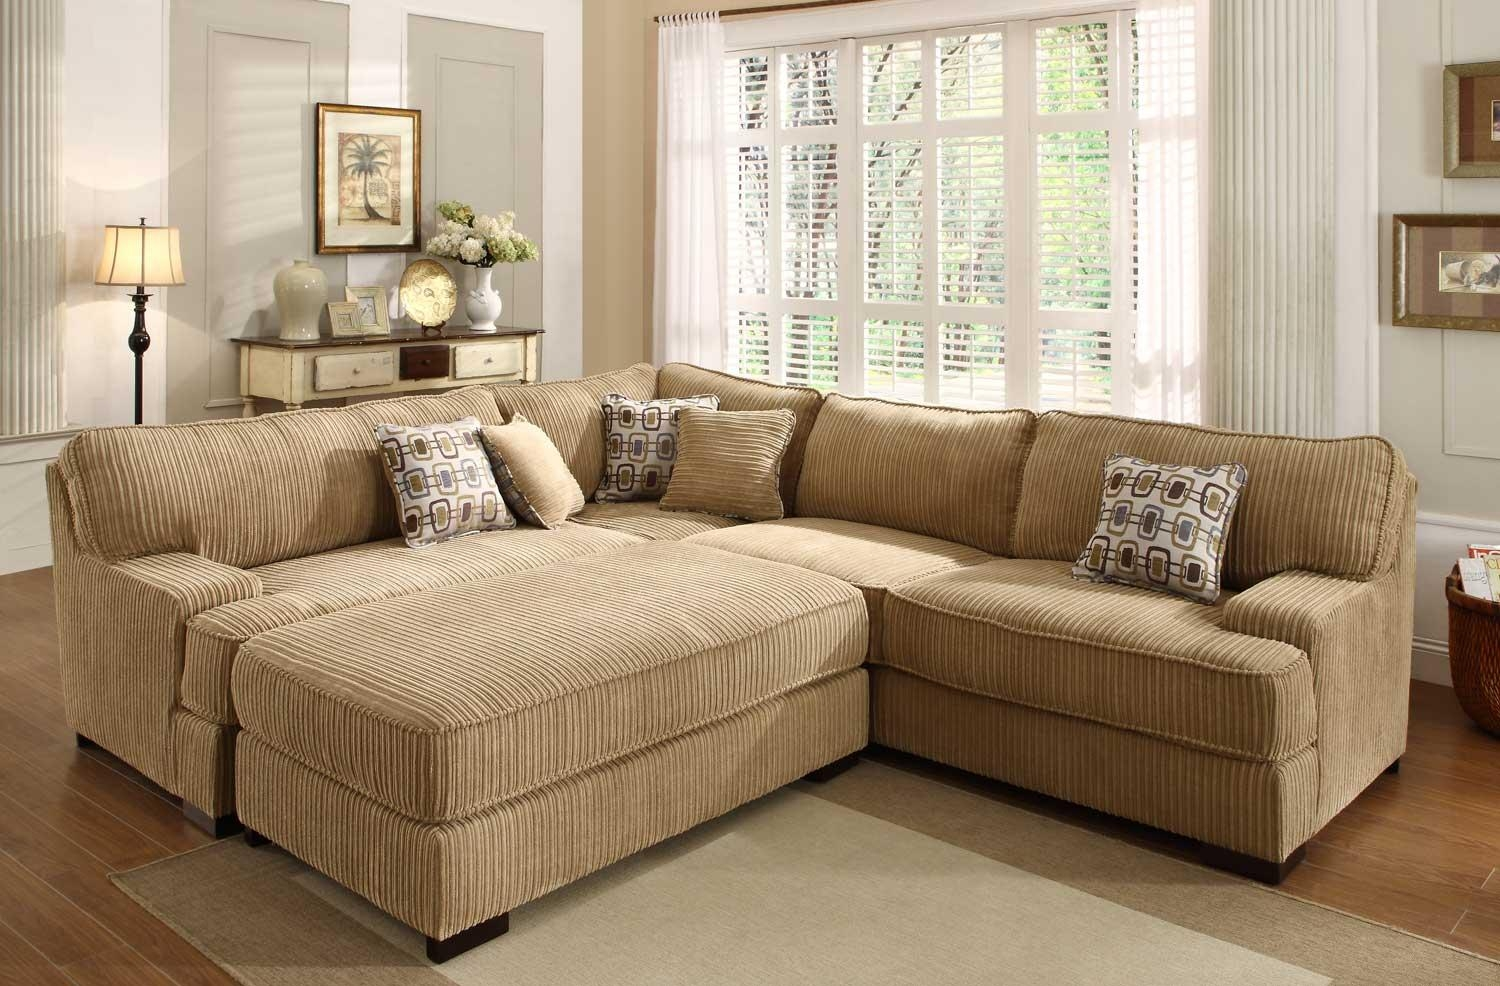 Sofas: Oversized Sofas | Sectional Sofa Bed | Oversized Sofa Chairs In Large Sofa Chairs (View 10 of 20)